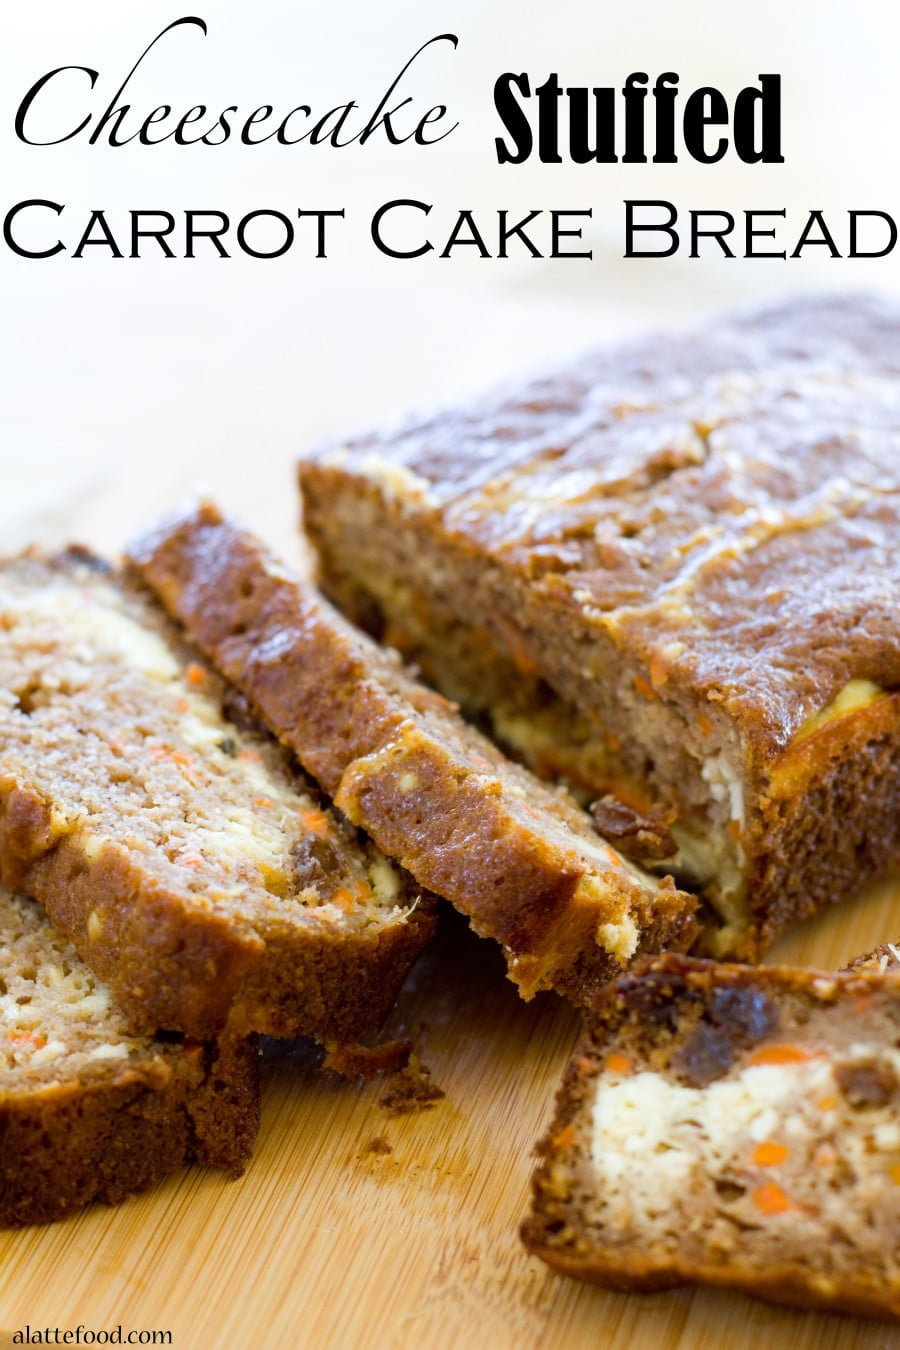 Cheesecake Stuffed Carrot Cake Bread from A Latte Food | 20 Sweet and Decadent Breads! Whether it's for breakfast, lunch, or dinner, these sweet and decadent dessert breads are just what you need! | HomemadeHooplah.com